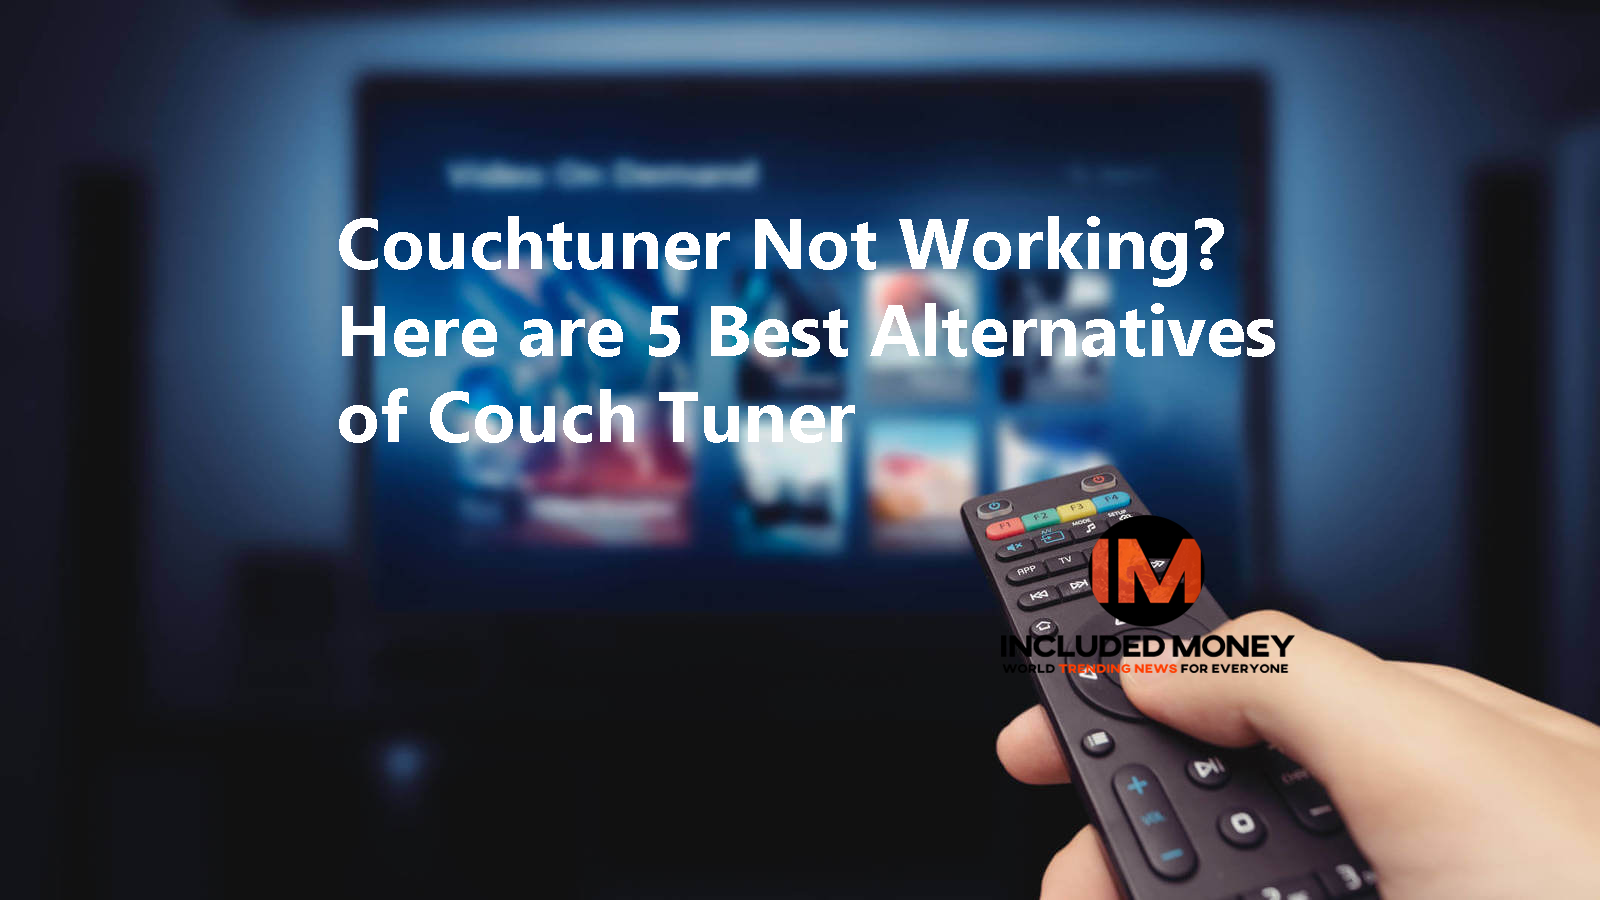 Couchtuner Not Working? Here are 5 Best Alternatives of Couch Tuner